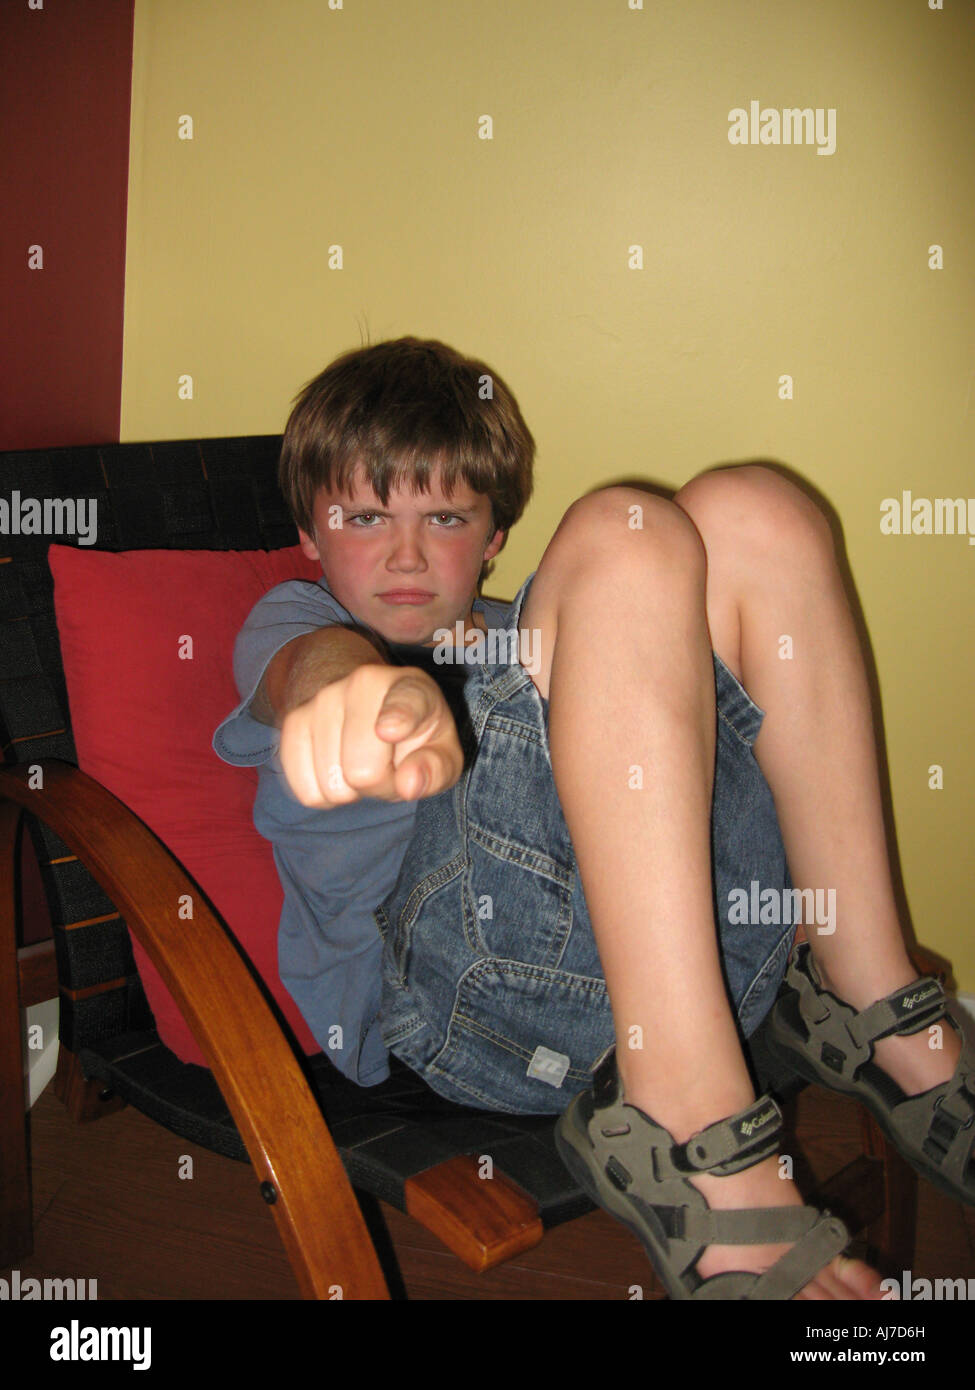 Angry boy pointing accusing finger - Stock Image